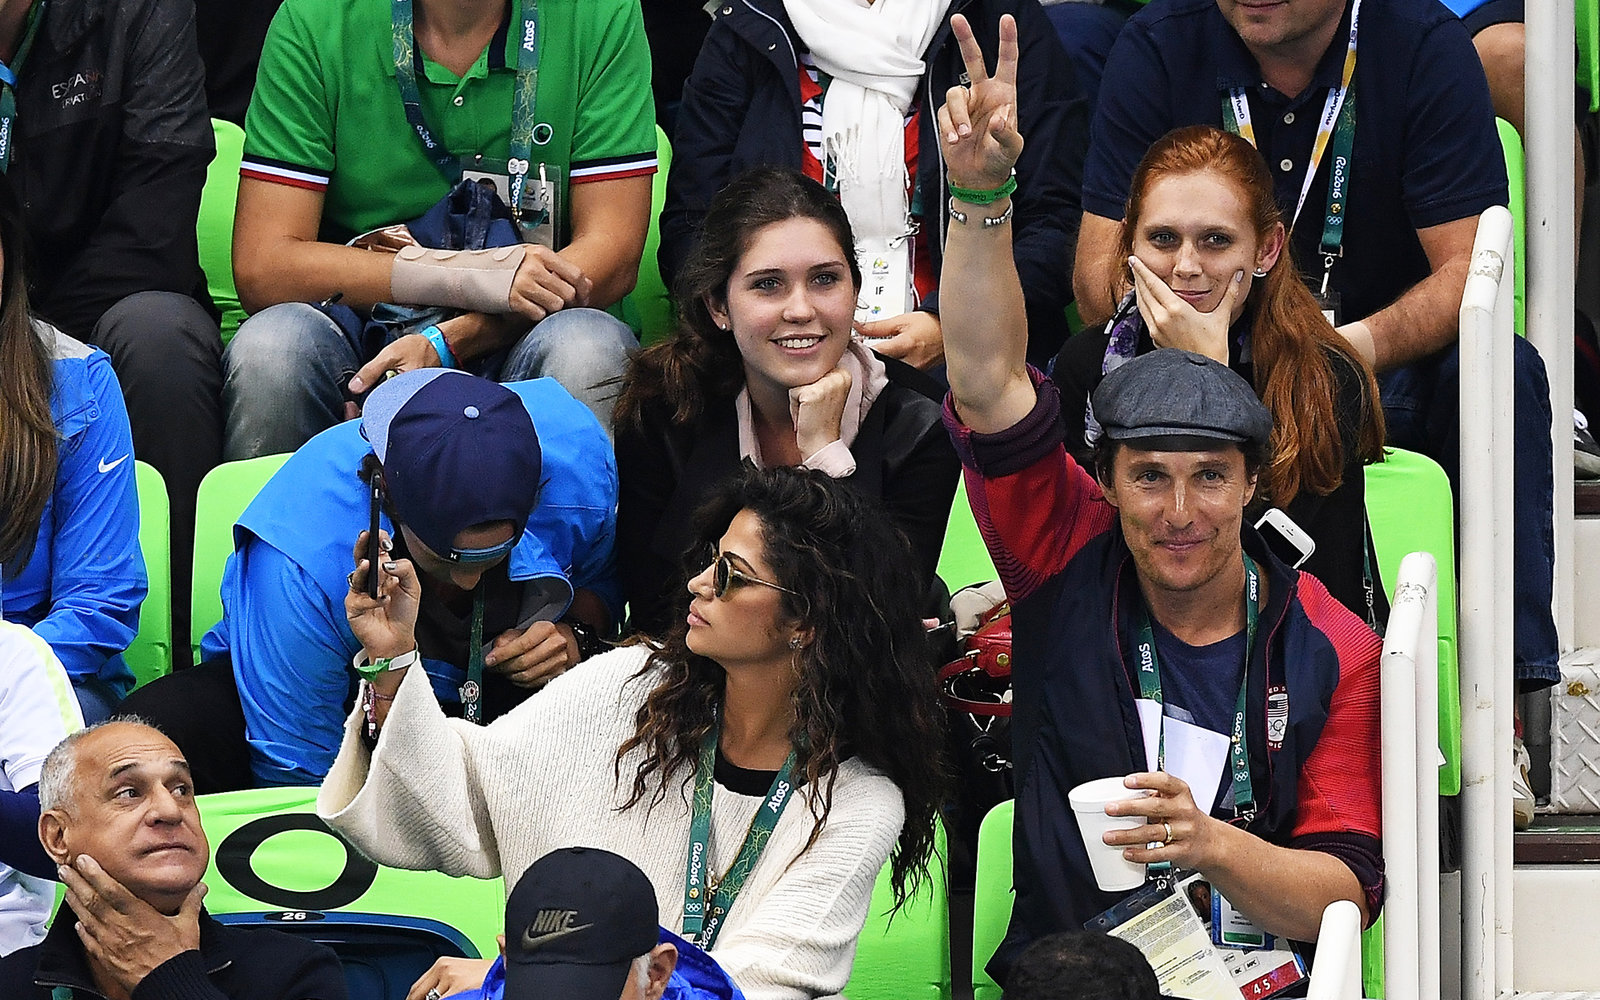 Matthew McConaughey Is Having the Best Time at the Olympics